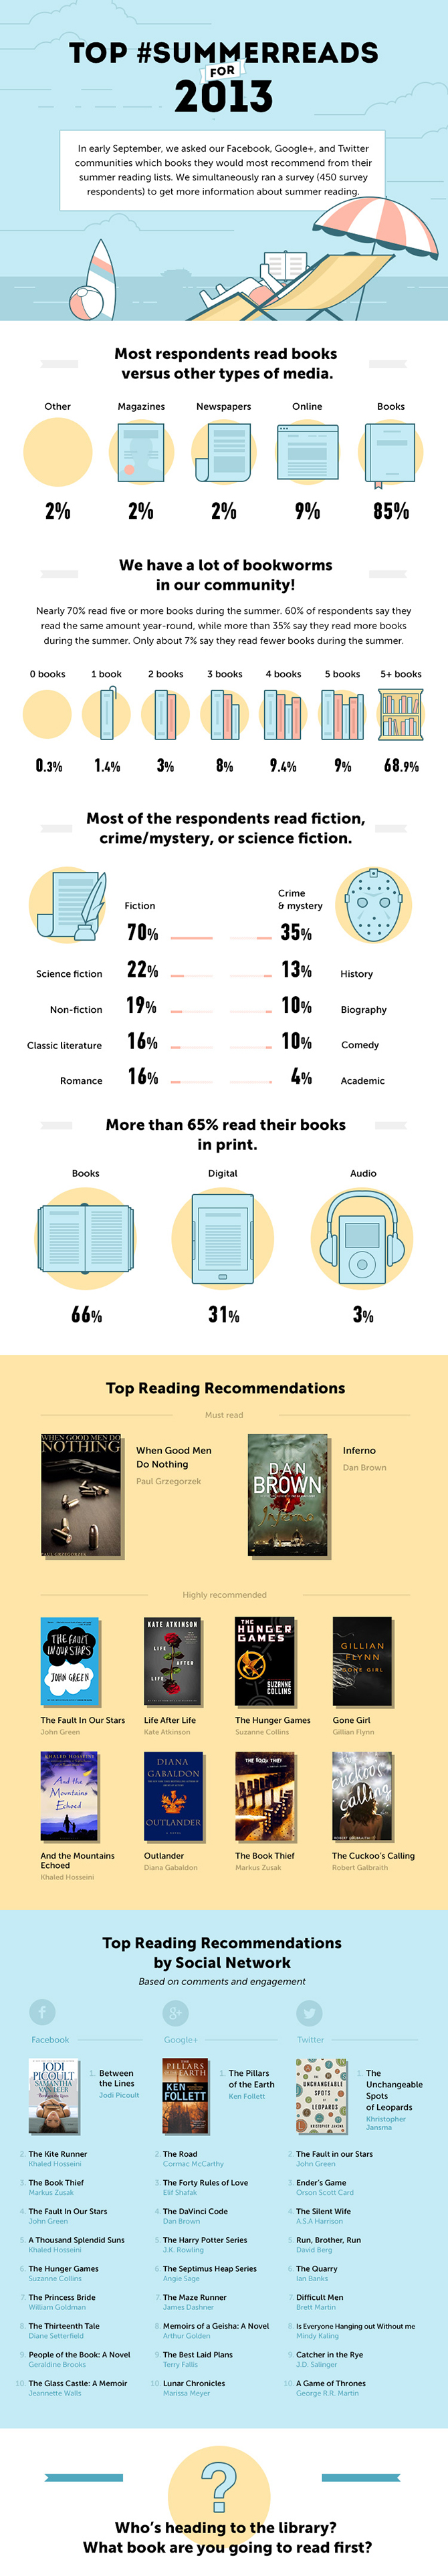 summerreading-infographic